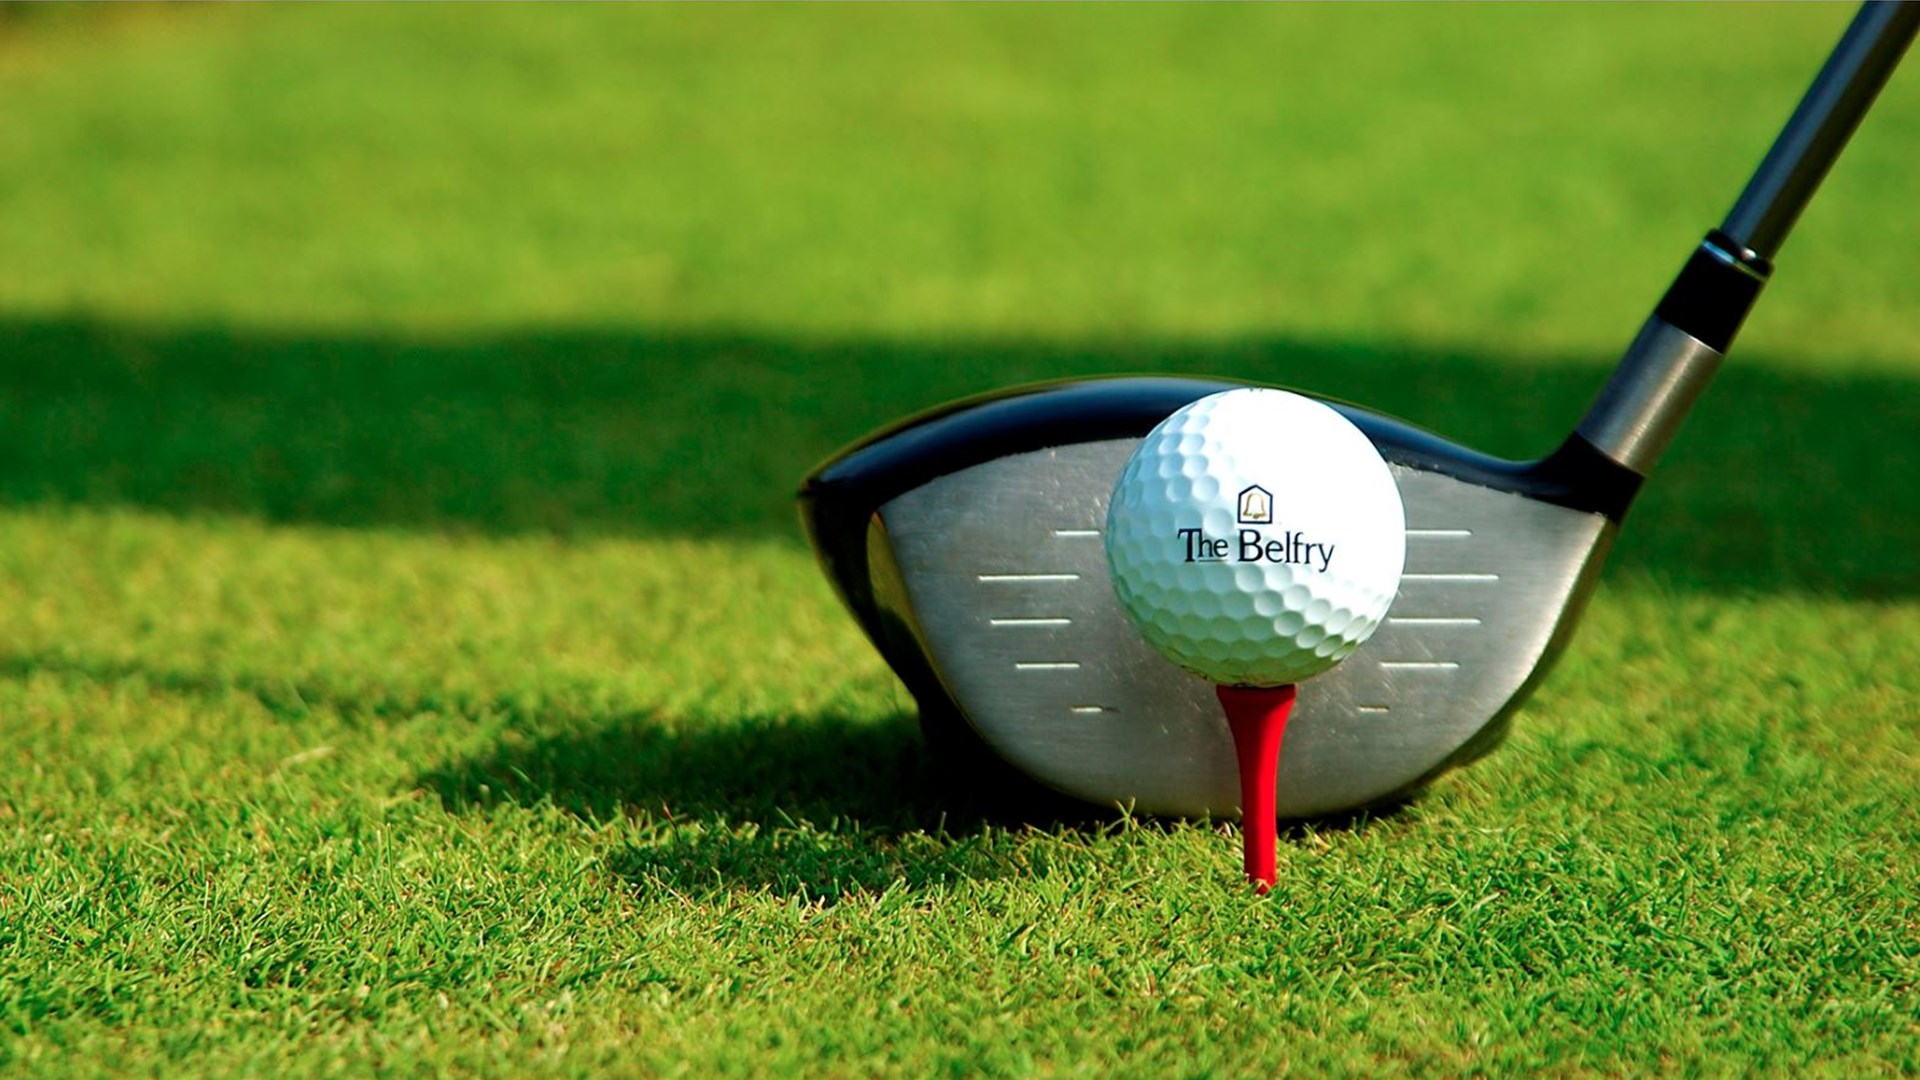 Belfry Golf Ball